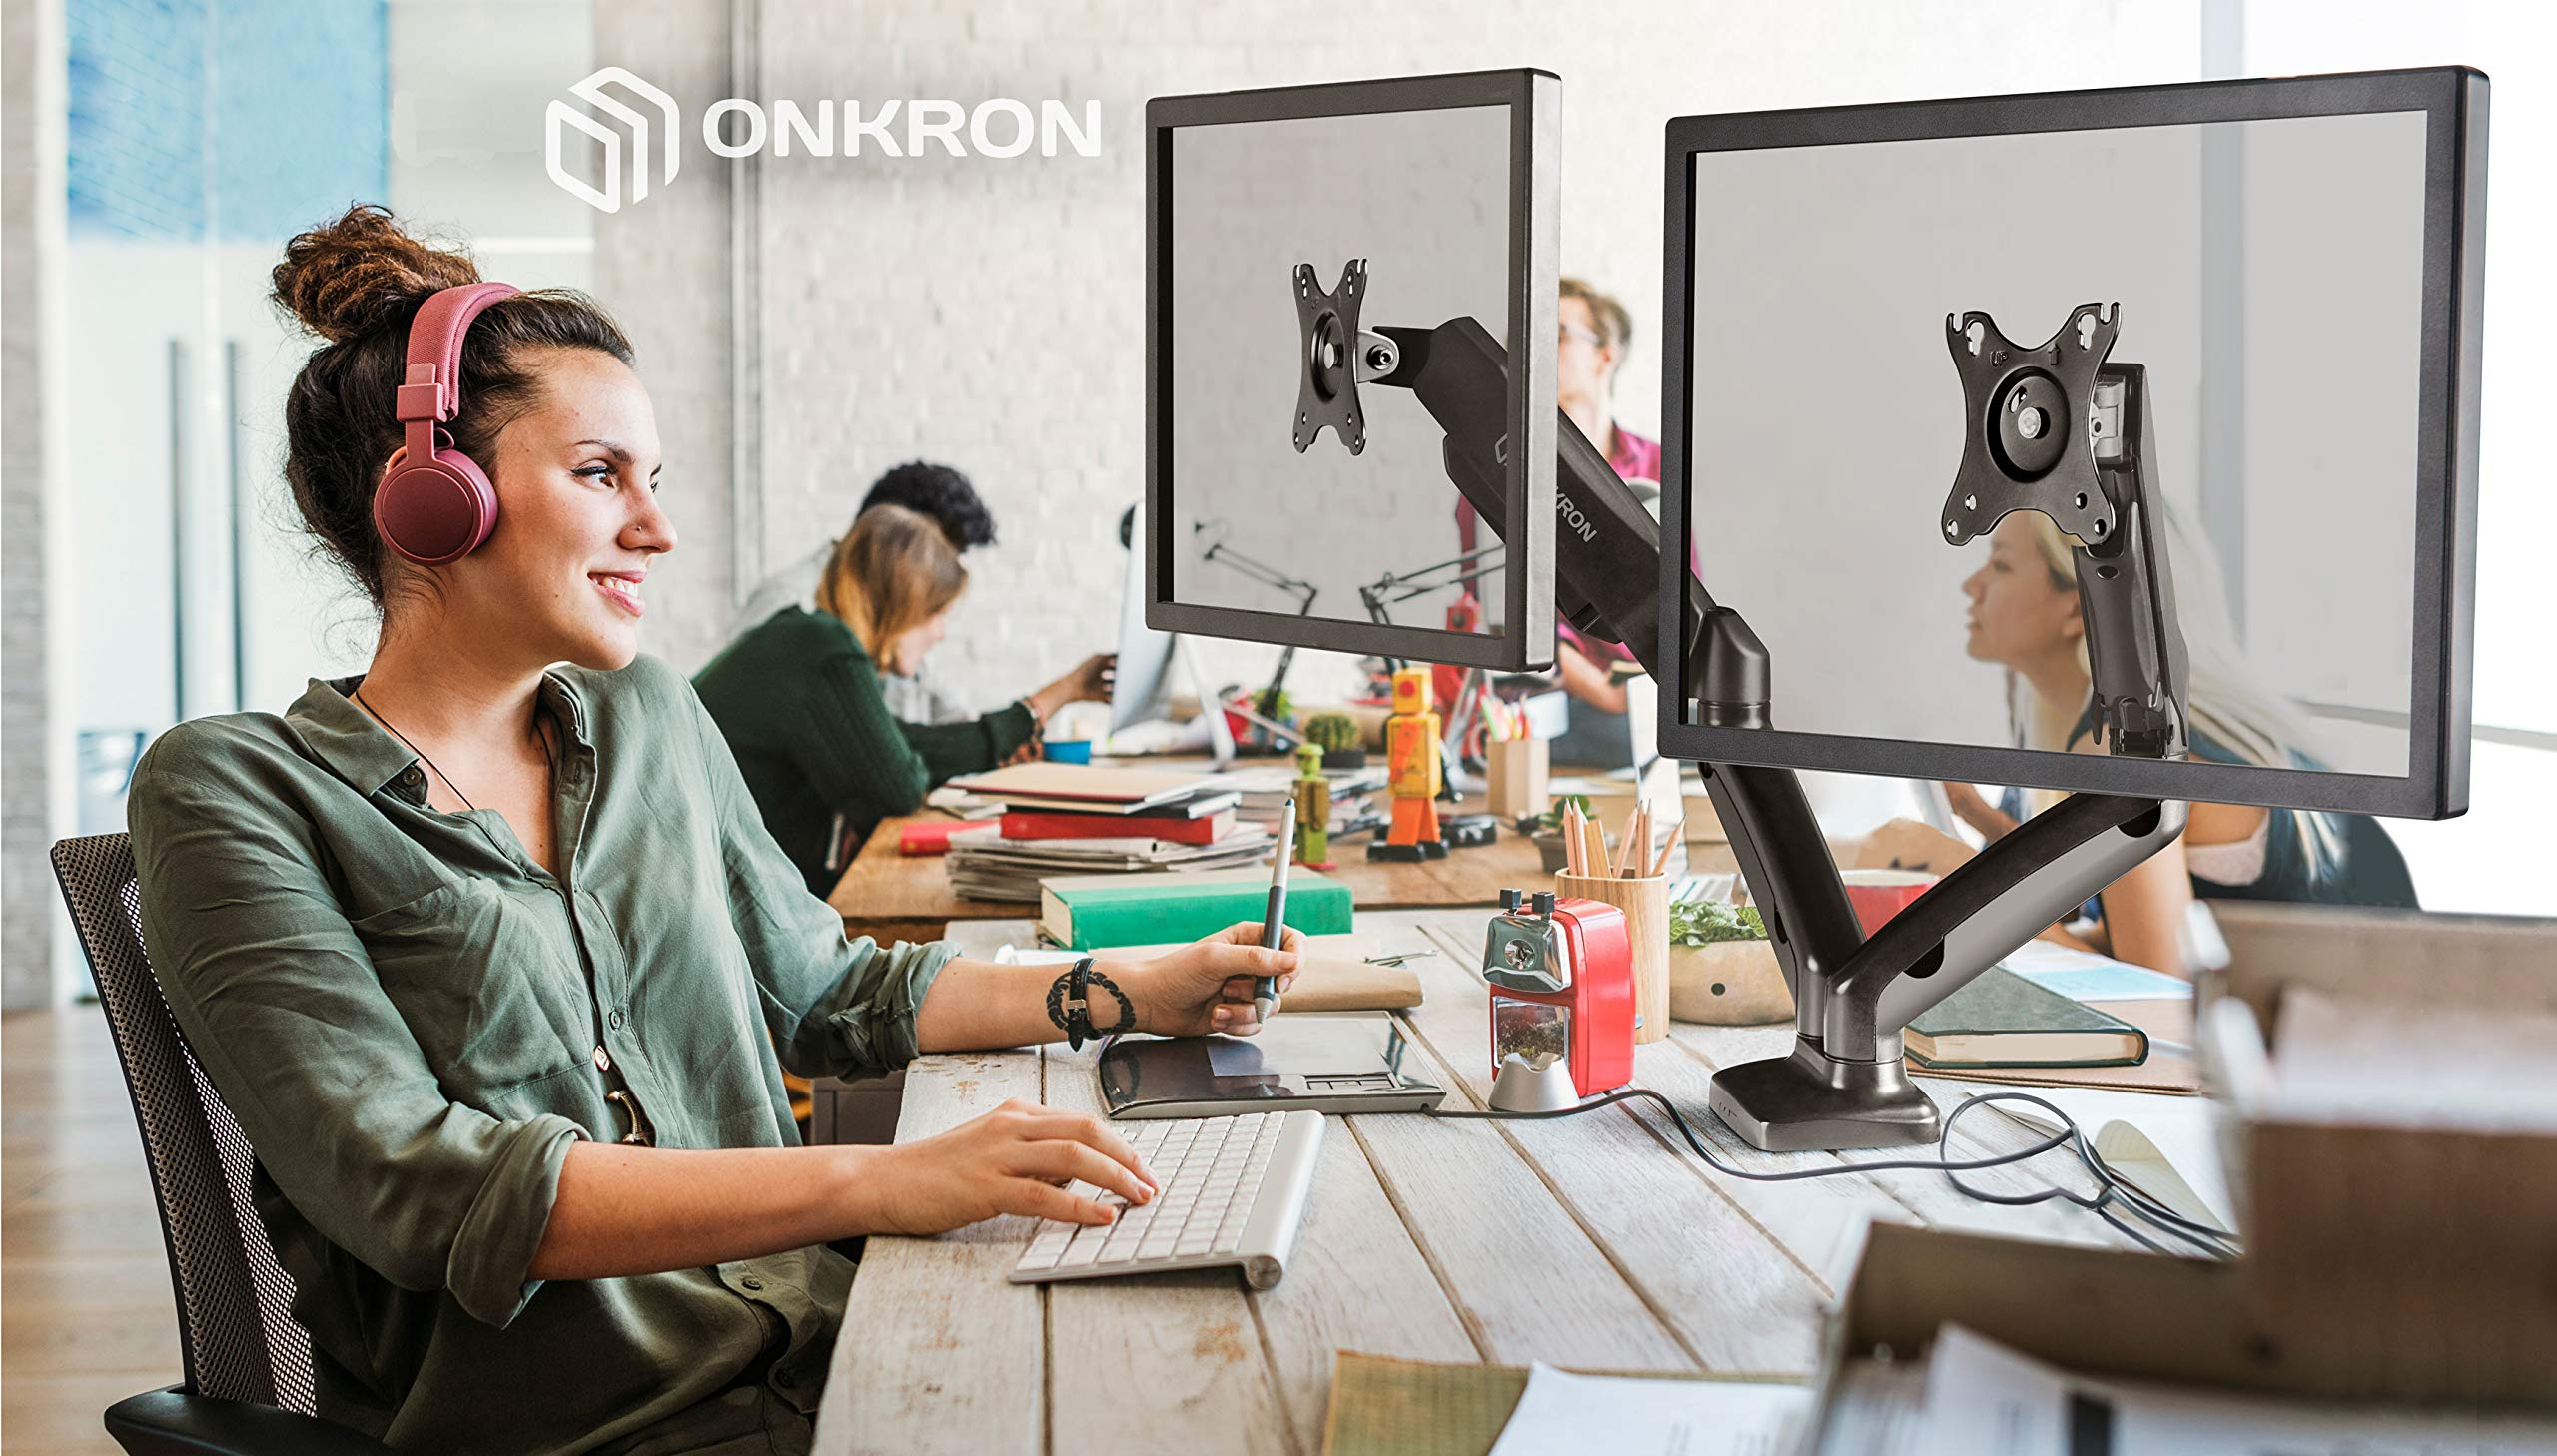 ONKRON Dual Monitor Desk Mount for 13 to 27-Inch LCD LED Computer TV Screens up to 14.3 lbs G160 by ONKRON (Image #6)